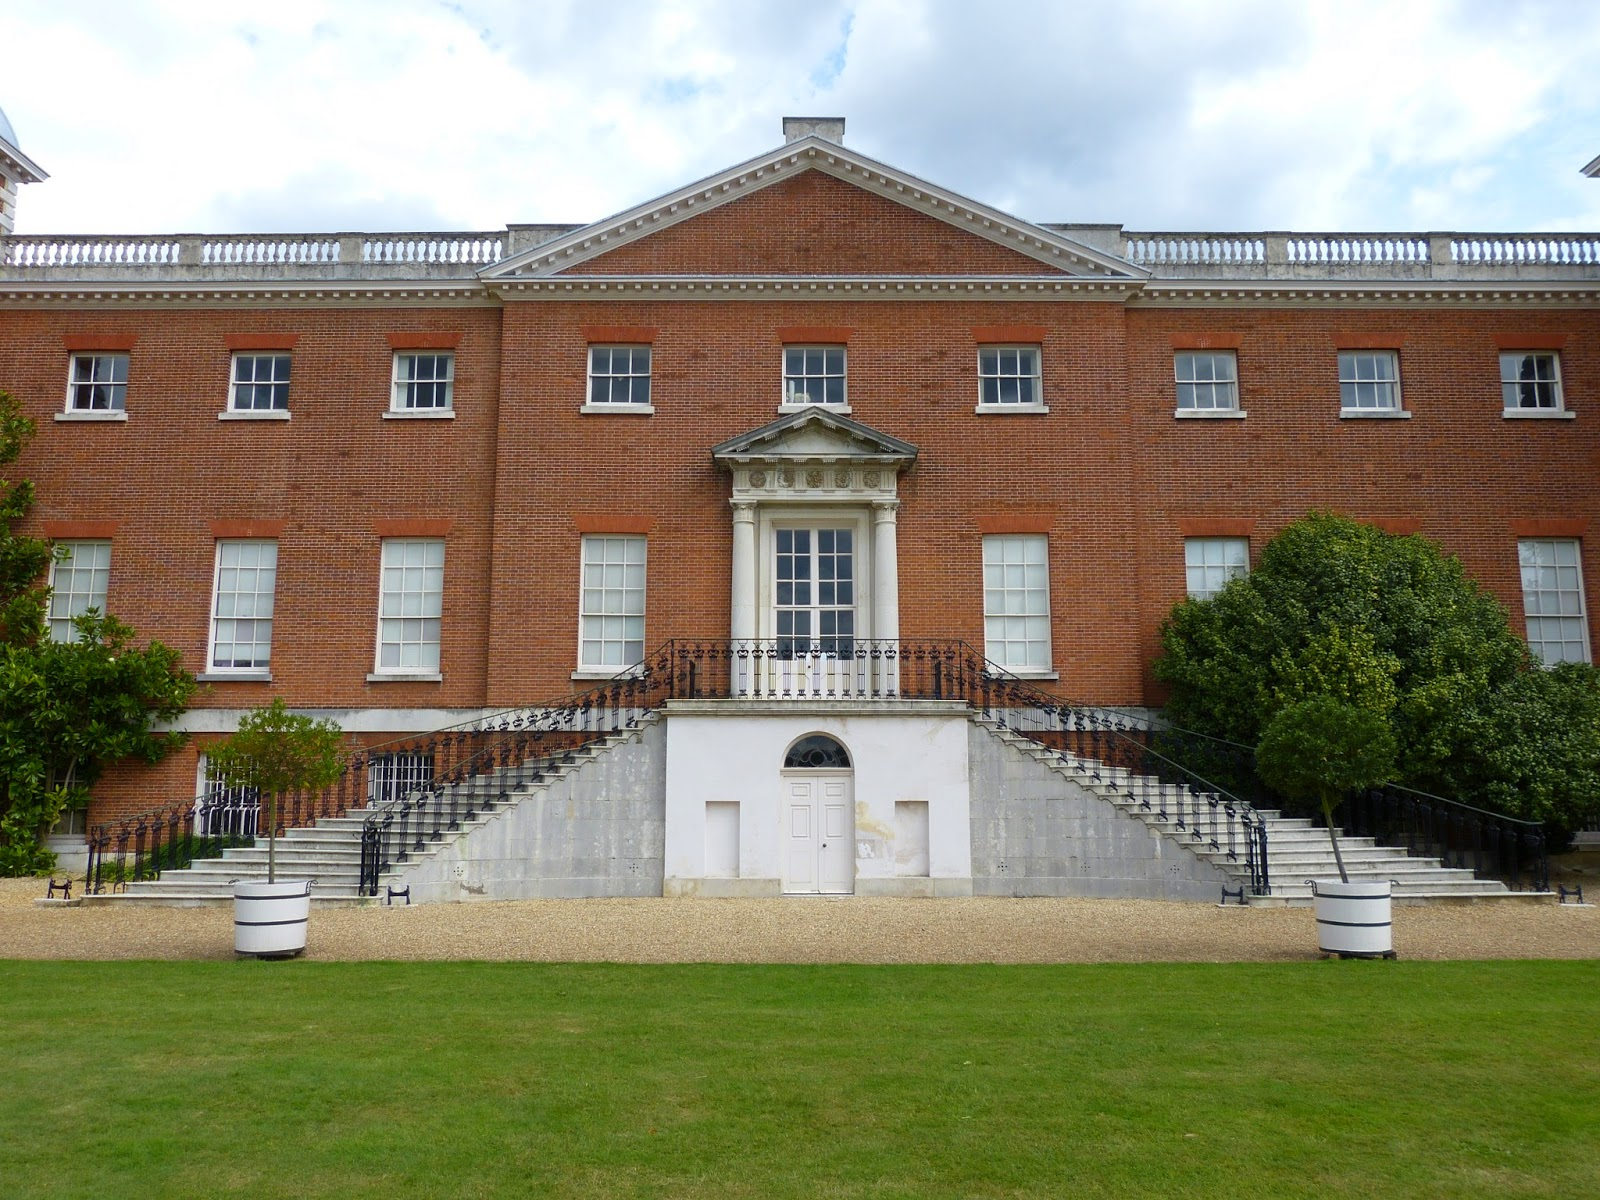 Osterley Park from the gardens